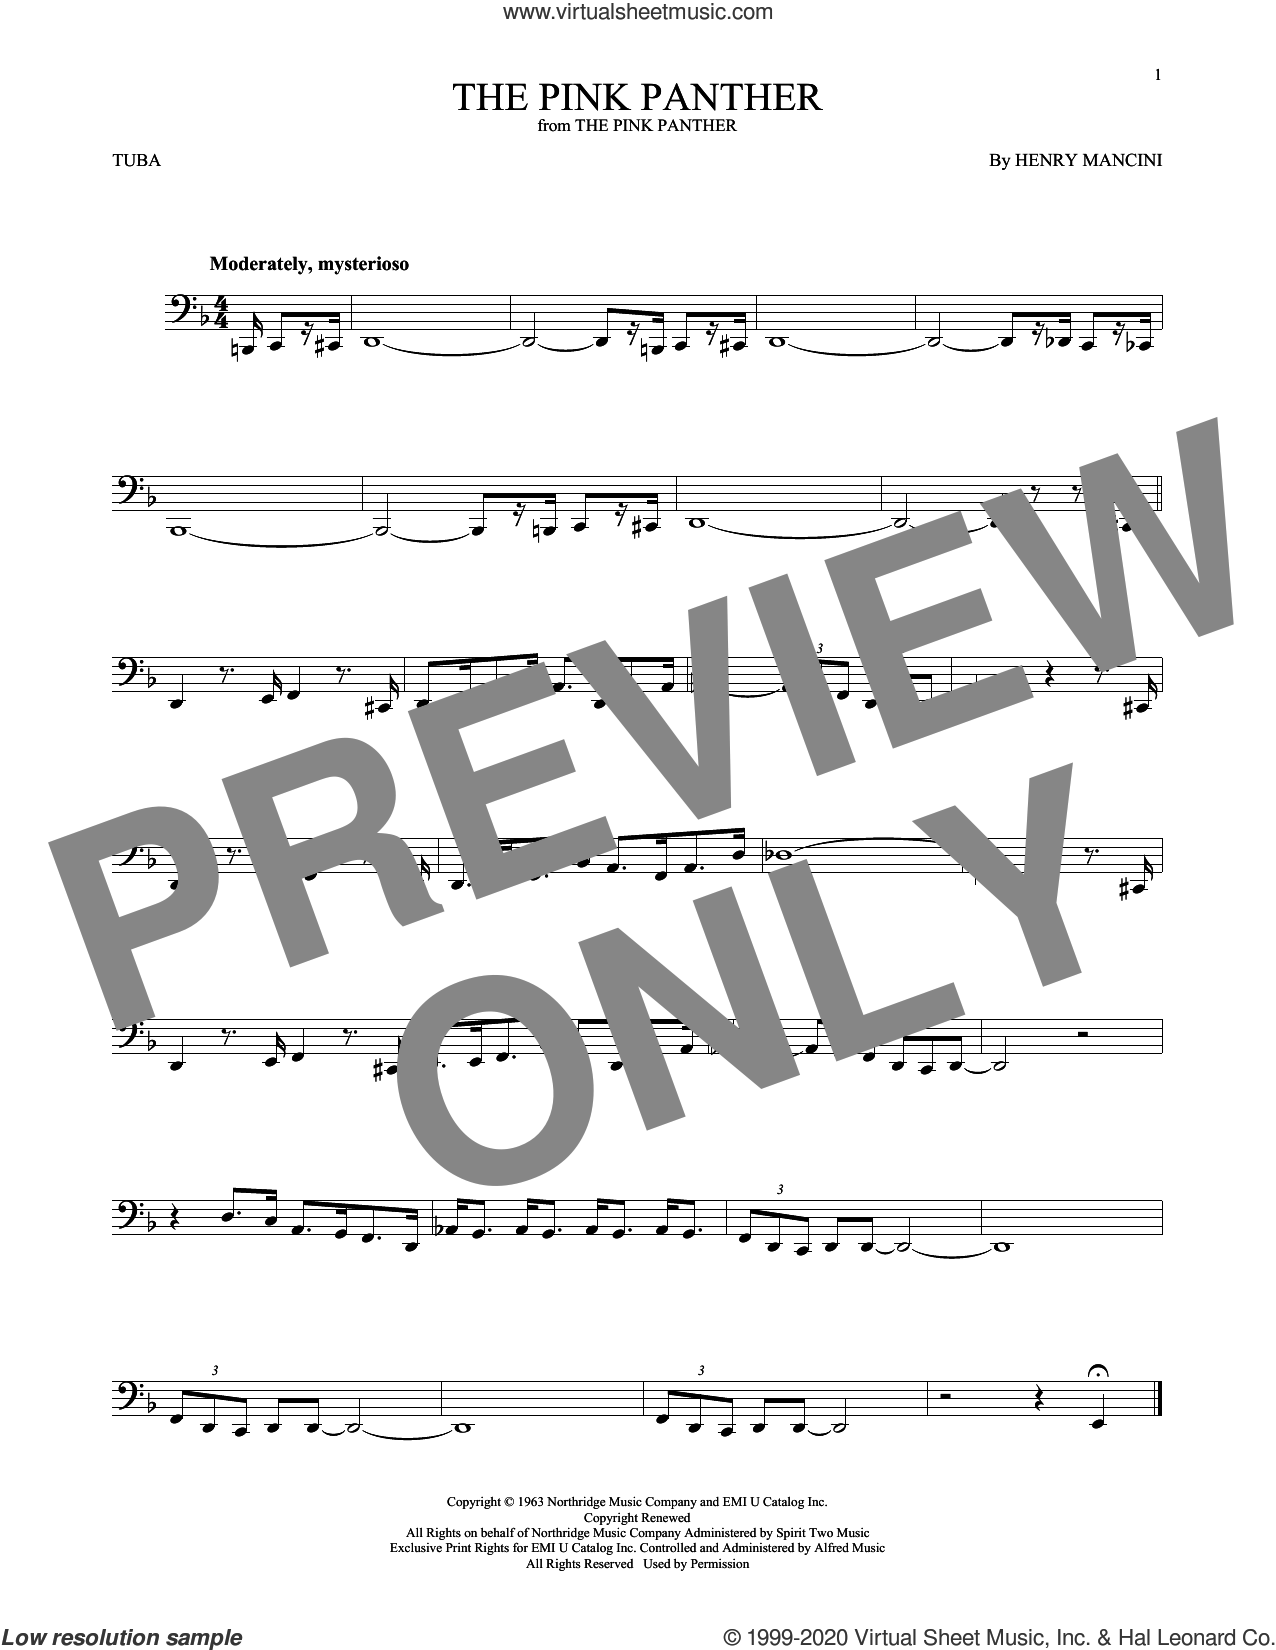 The Pink Panther sheet music for Tuba Solo (tuba) by Henry Mancini, intermediate skill level